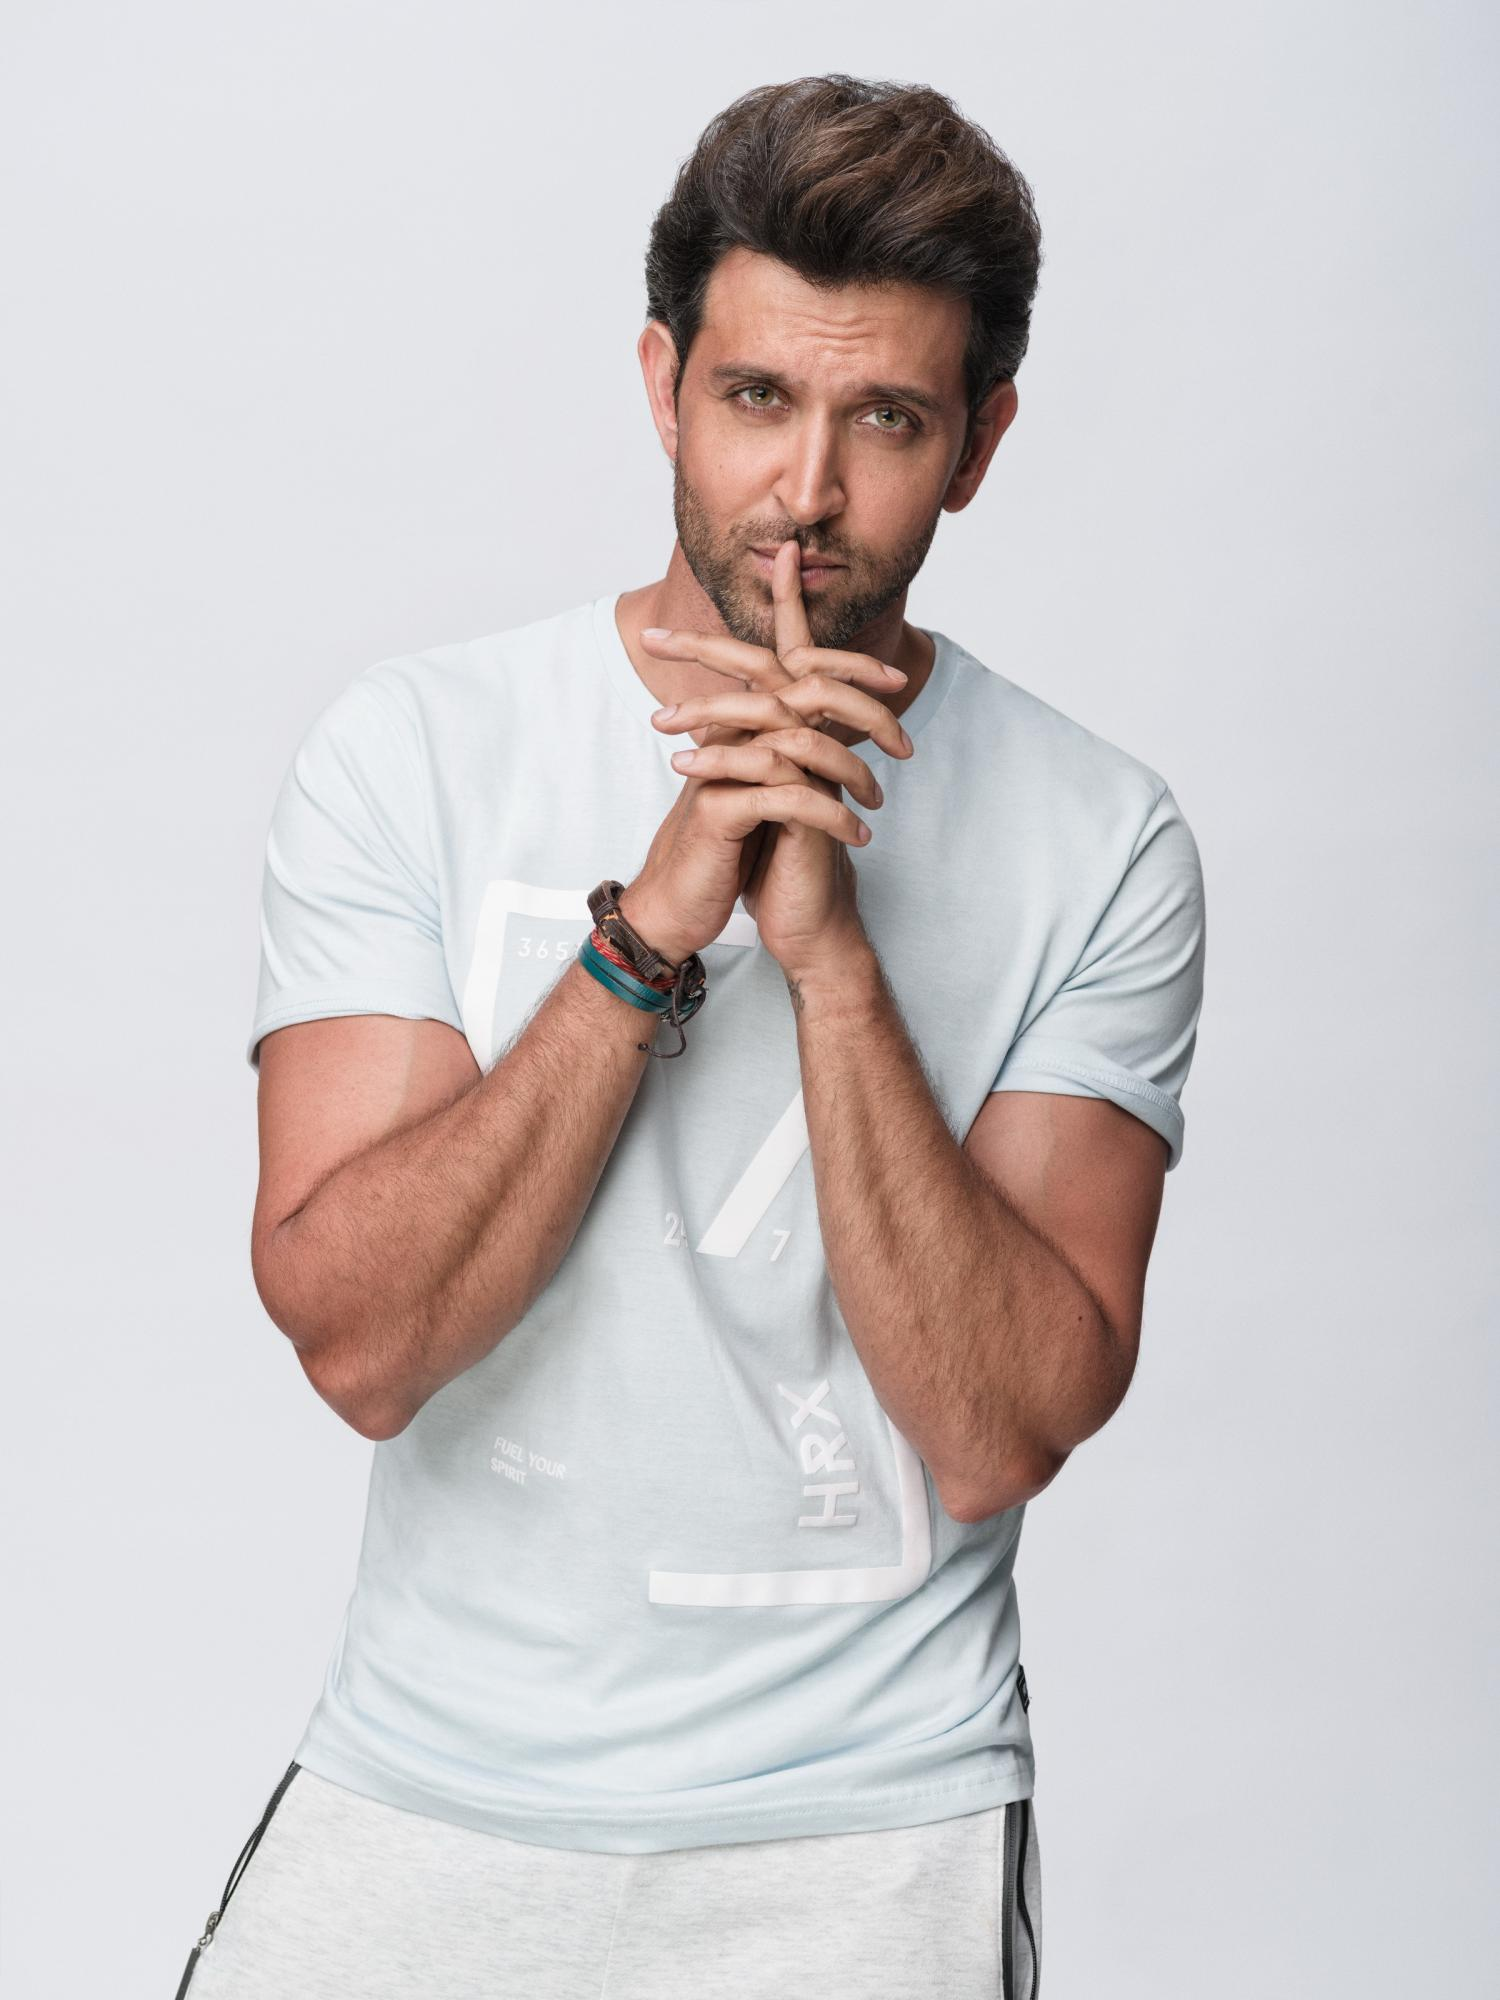 Hrithik Roshan to Commit to a Relationship in 2020? Find Out Here! -  Masala.com